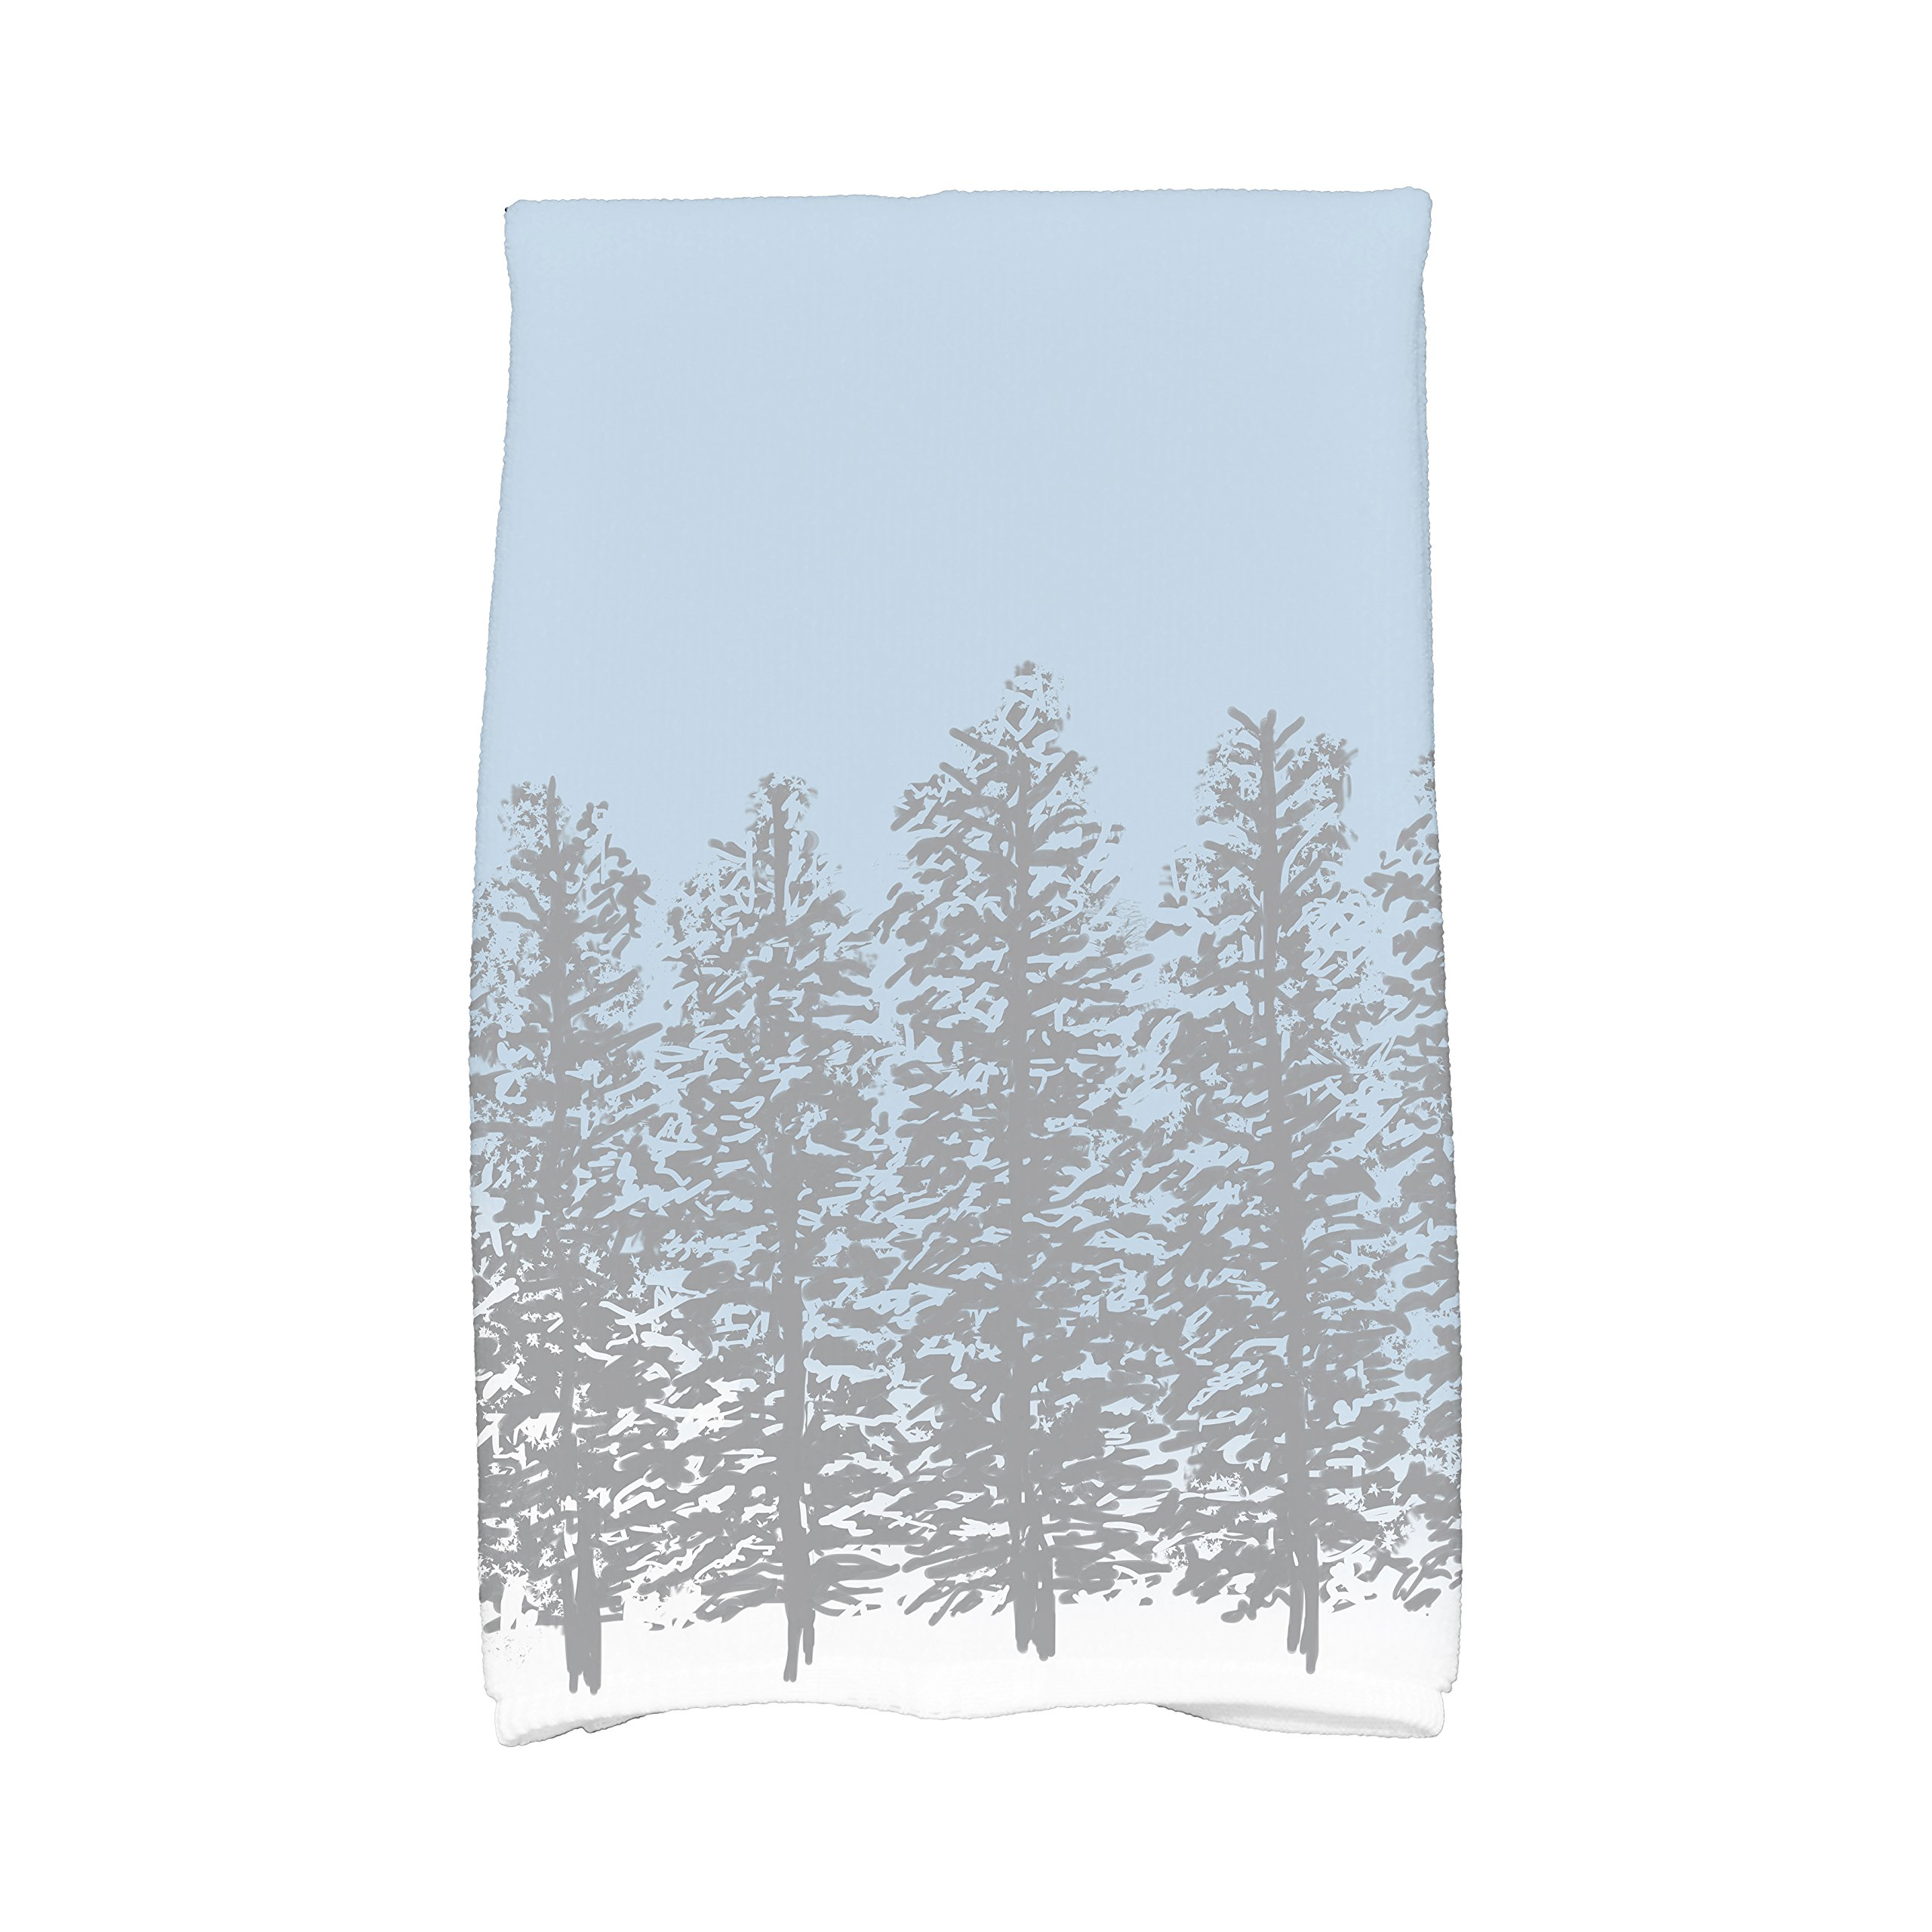 E by design KTHF973GY2 Hidden Forrest, Floral Print Kitchen Towel, 16 x 25, Gray